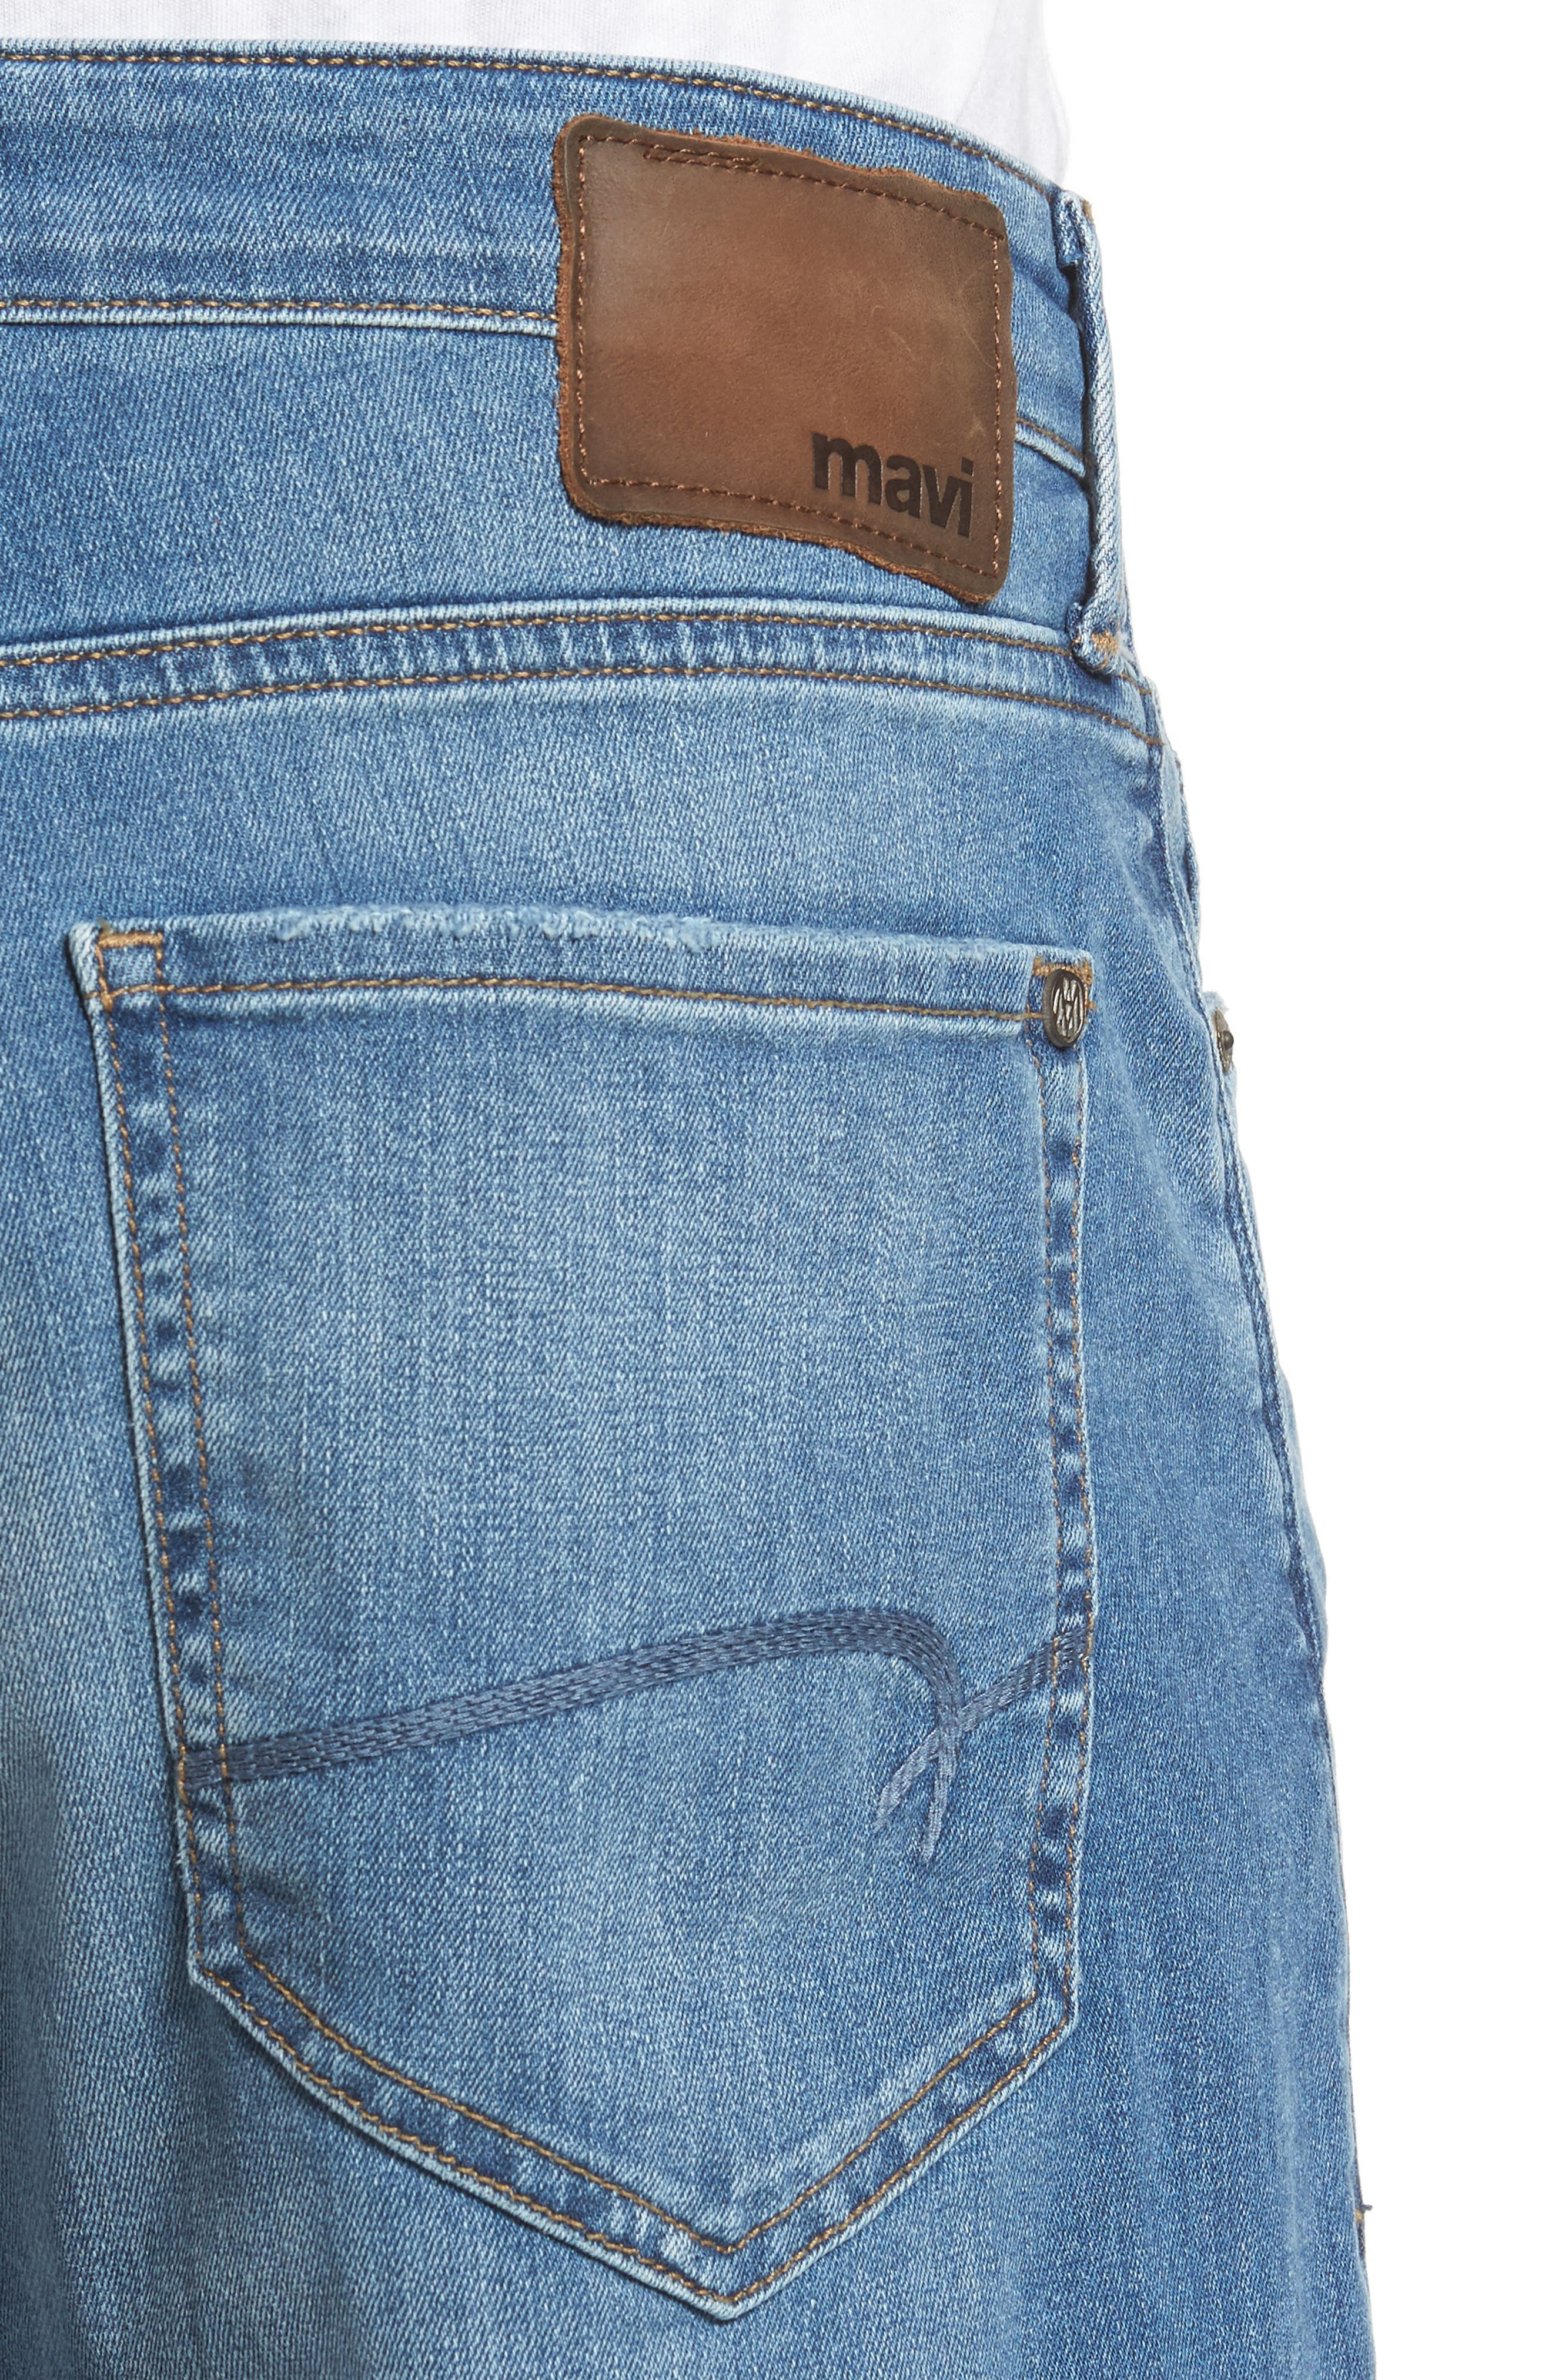 Max Relaxed Fit Jeans,                             Alternate thumbnail 4, color,                             401